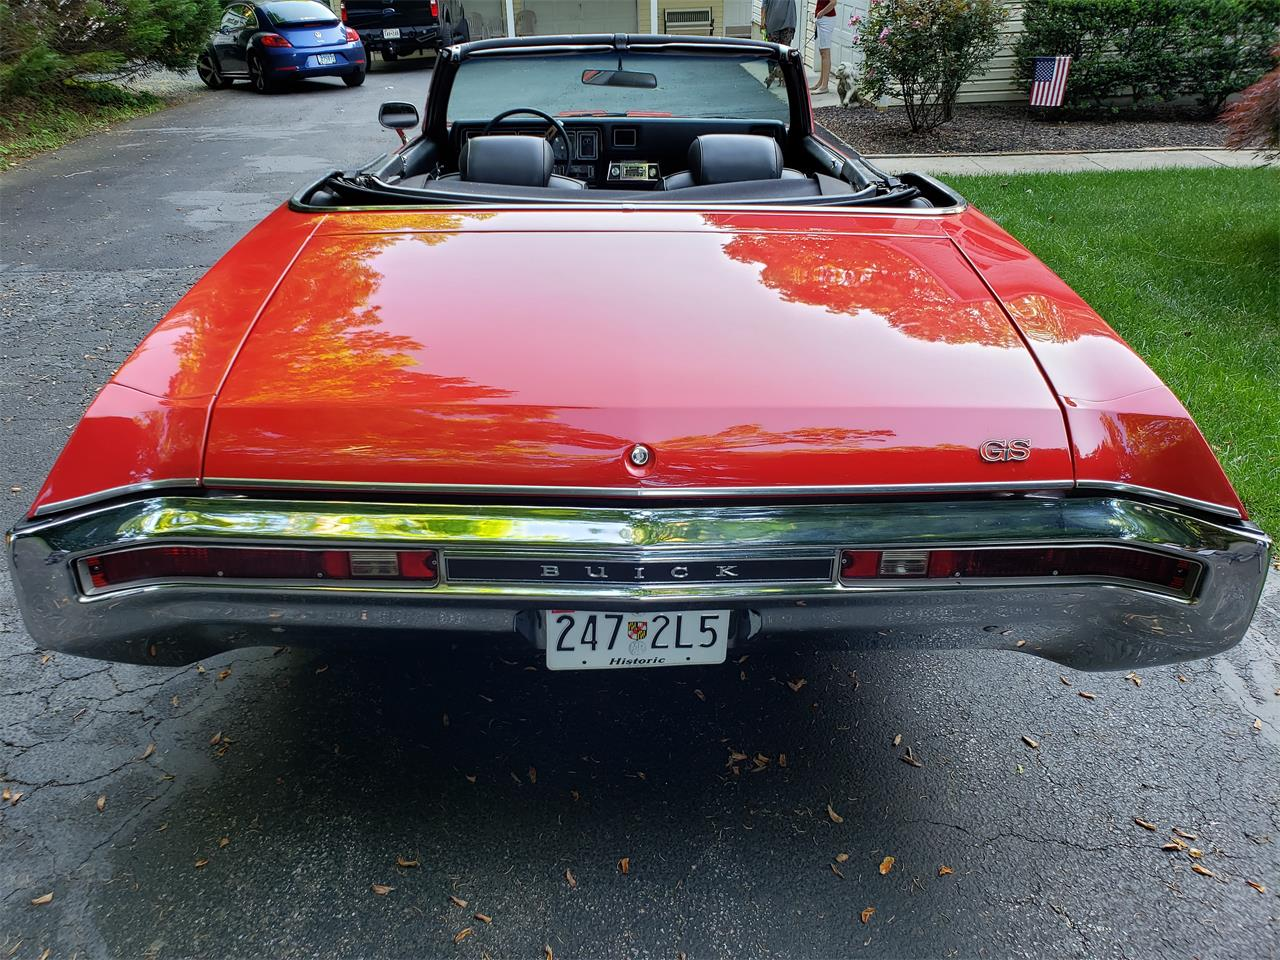 Large Picture of '70 Buick GS 455 located in Maryland - $47,000.00 Offered by a Private Seller - Q6WV